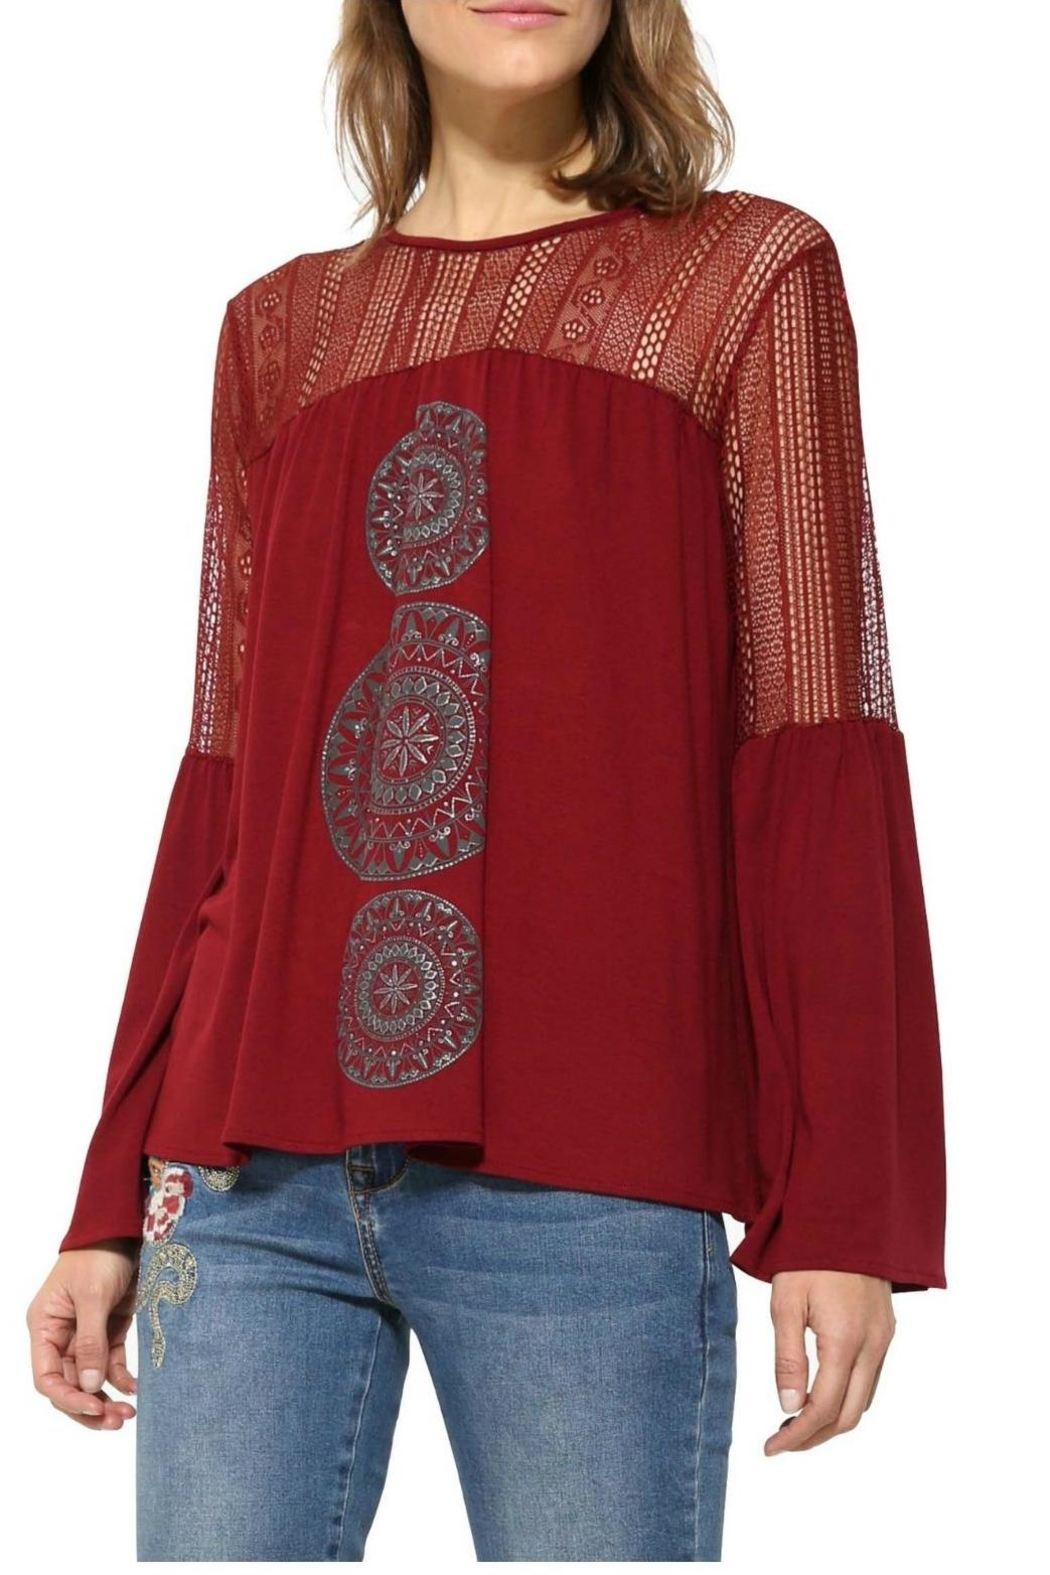 Desigual - Spain Bell Sleeve Blouse - Main Image